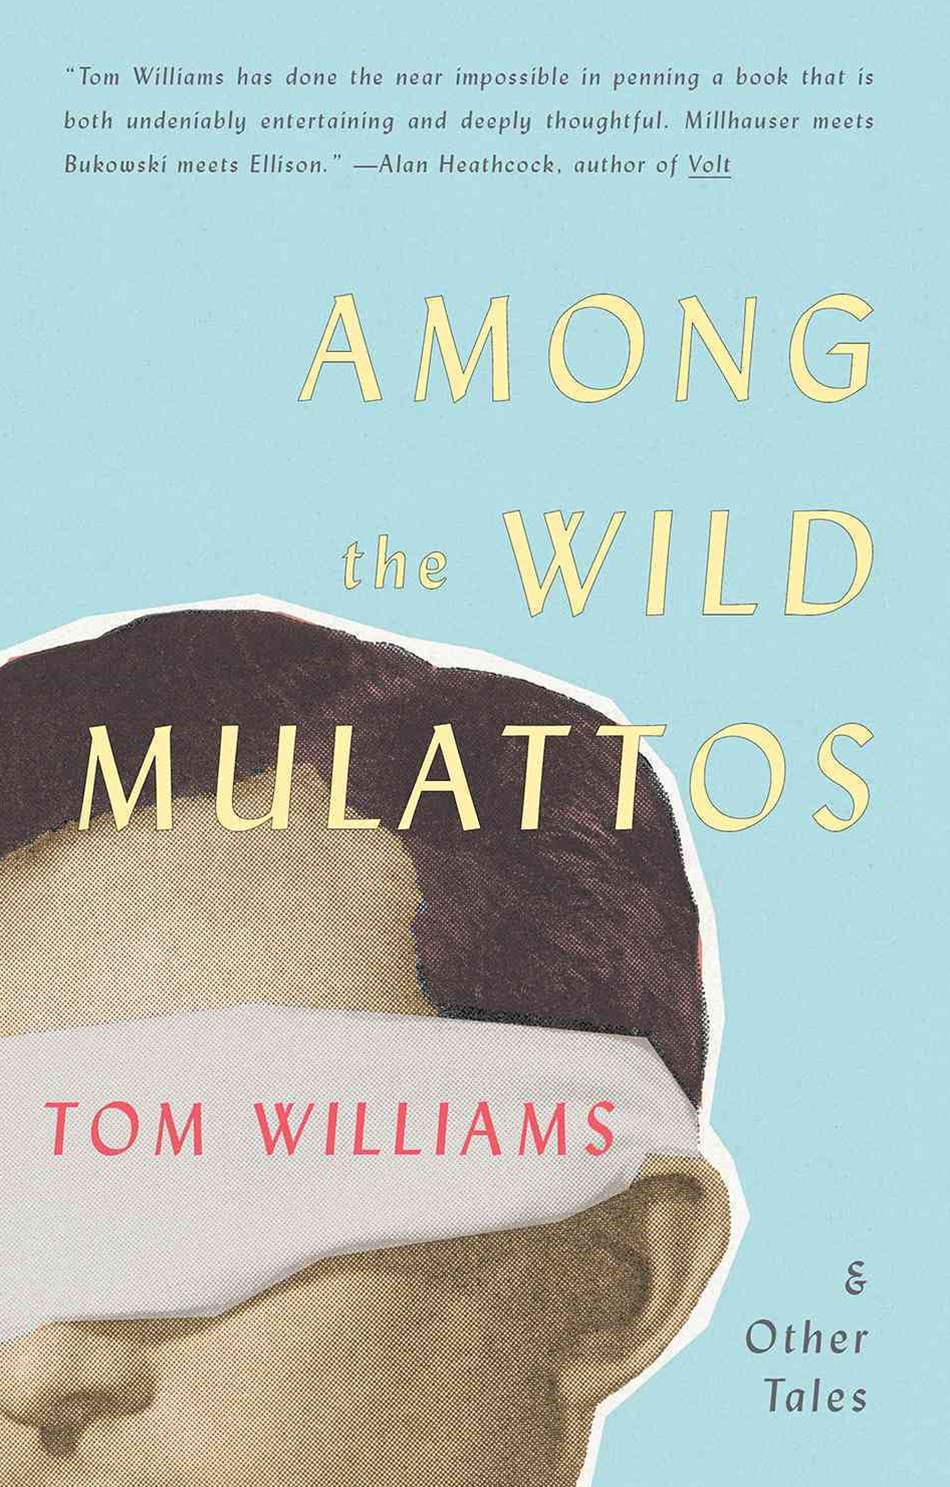 Among the Wild Mulattos and Other Tales